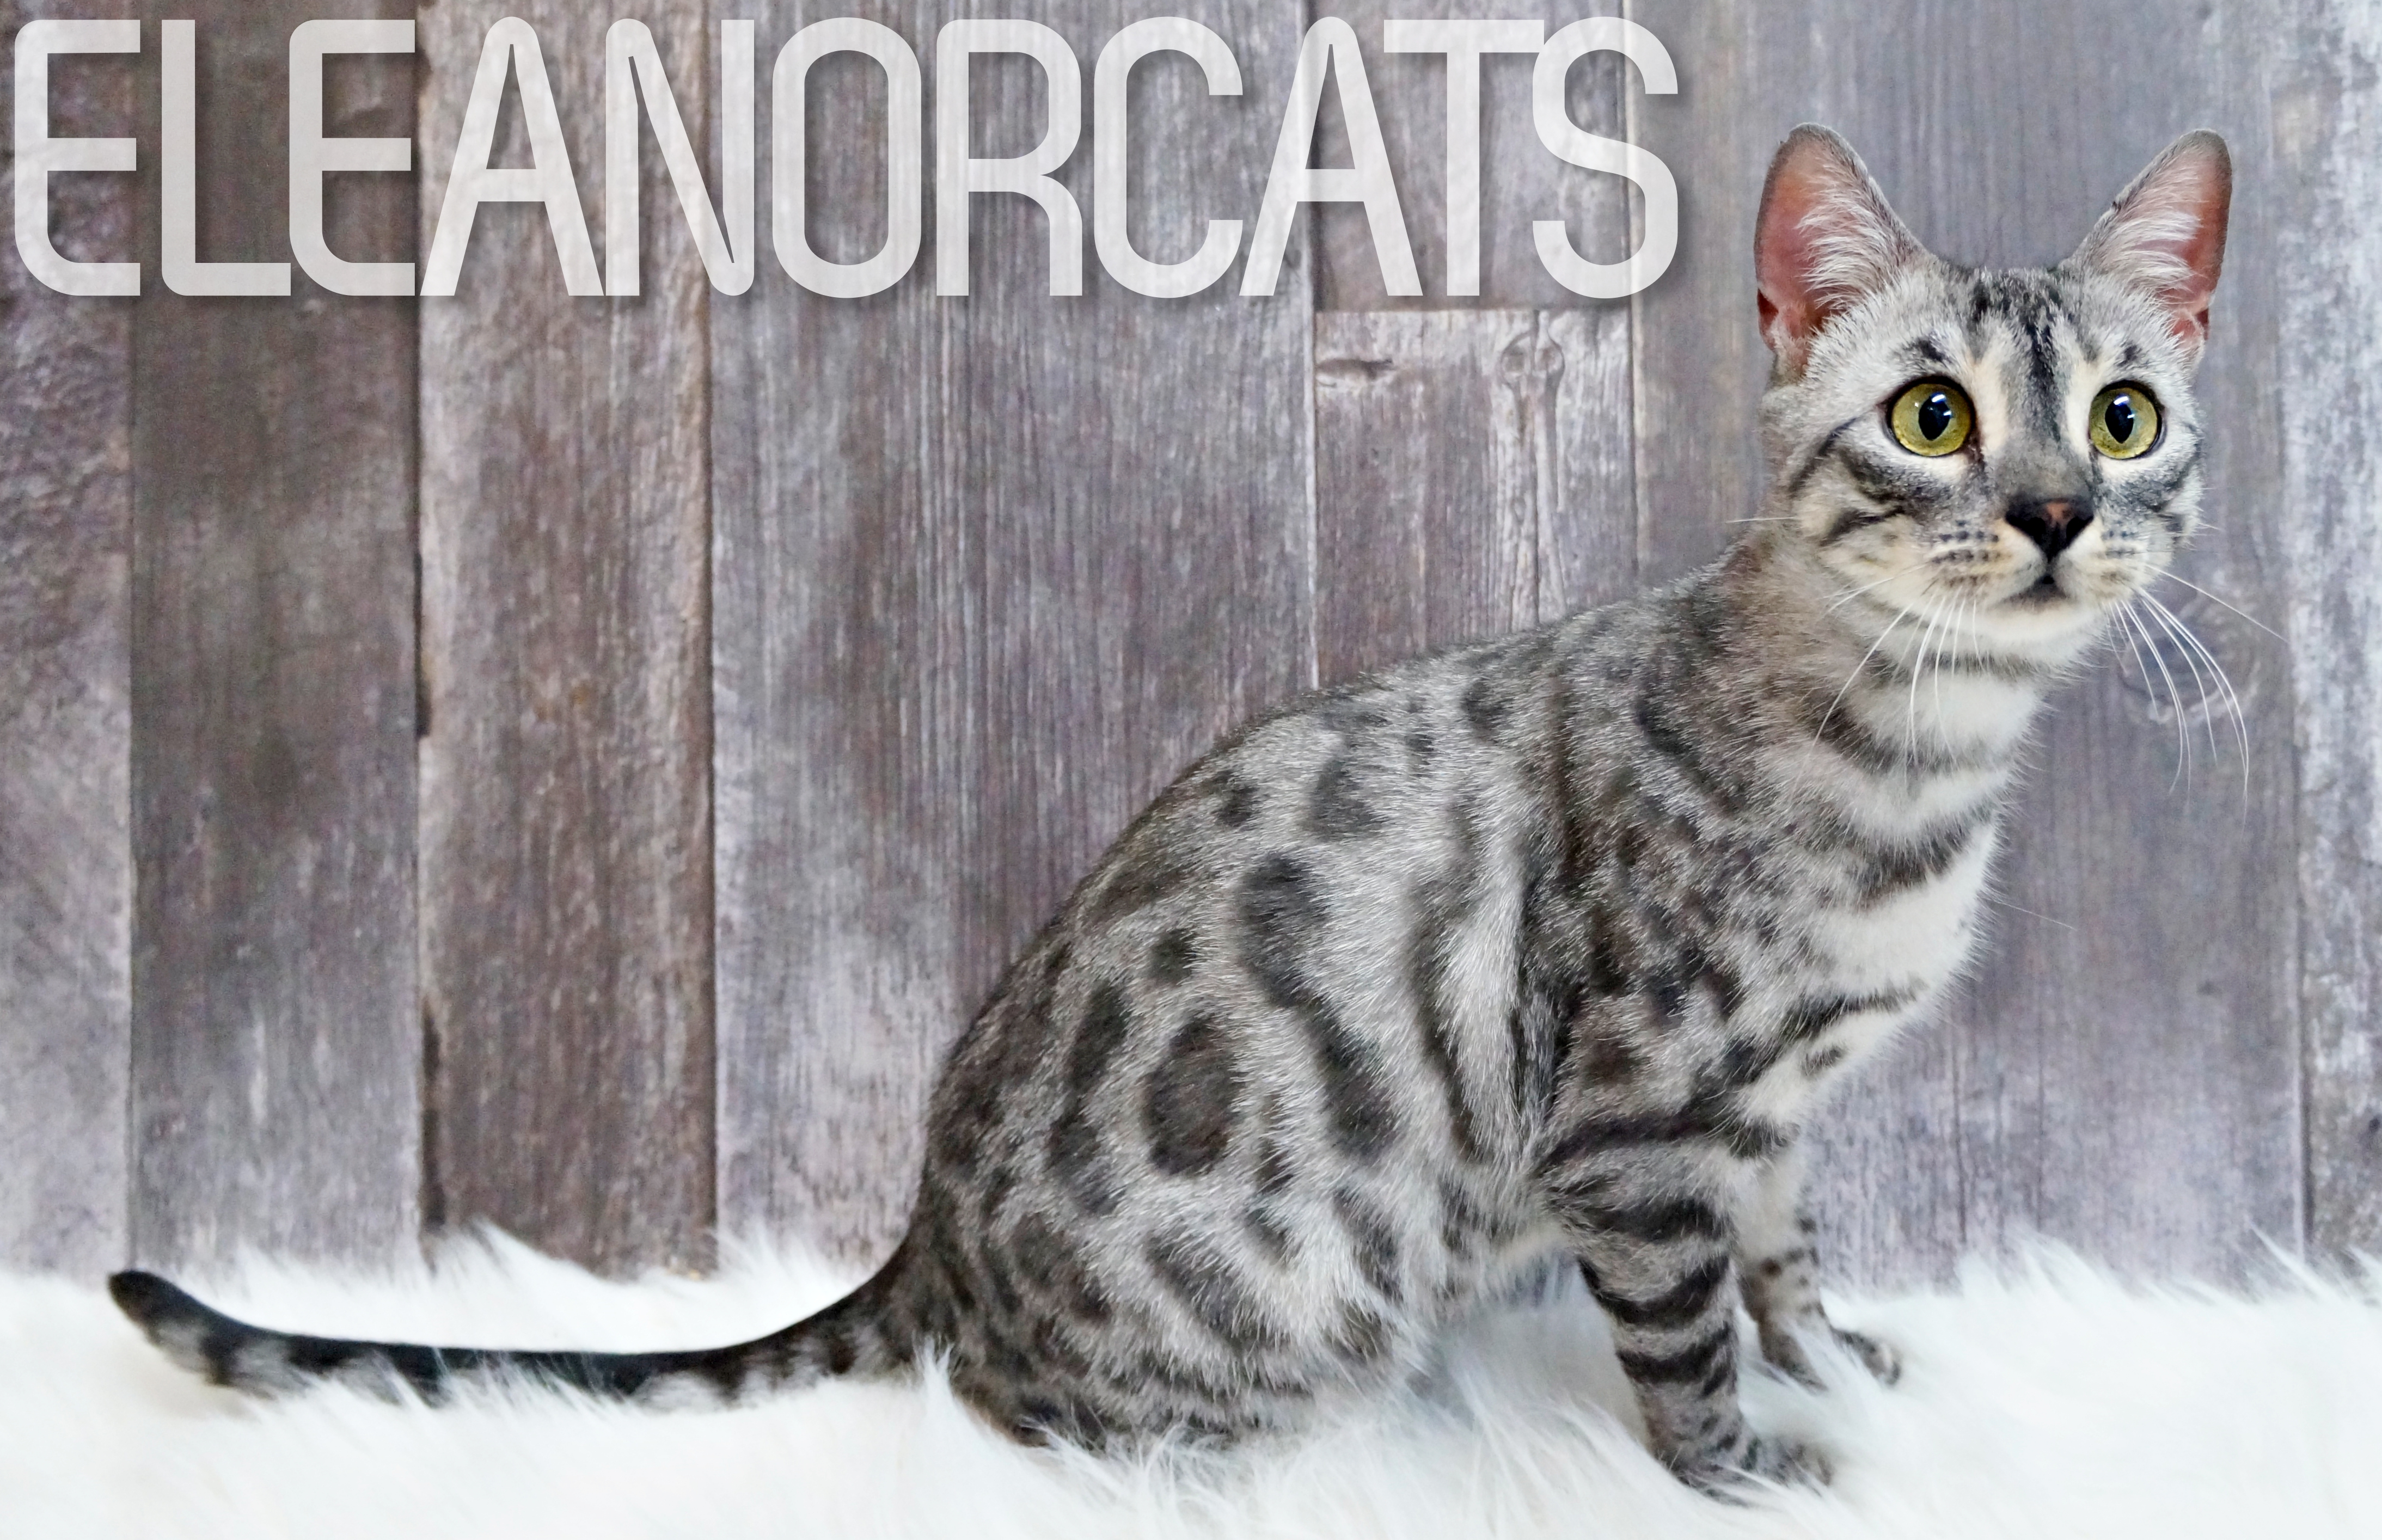 ELEANORCATS Everest silver charcoal bengal